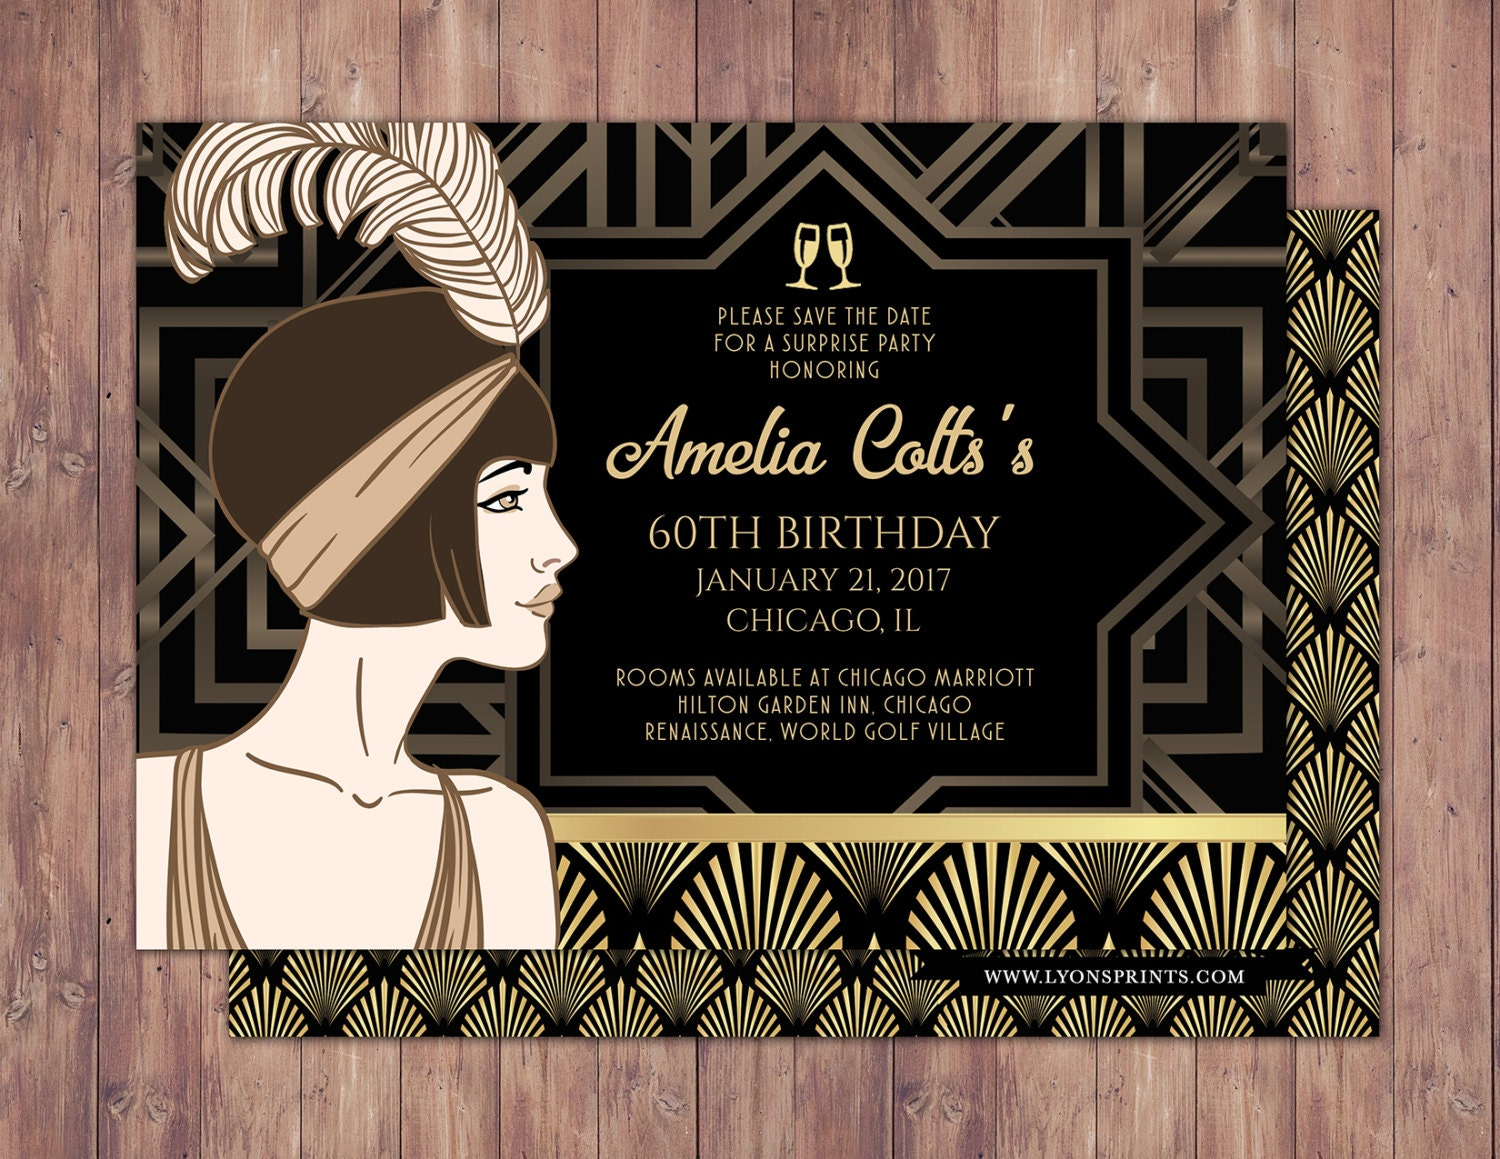 Great Gatsby save the date invitation RSVP card Roaring